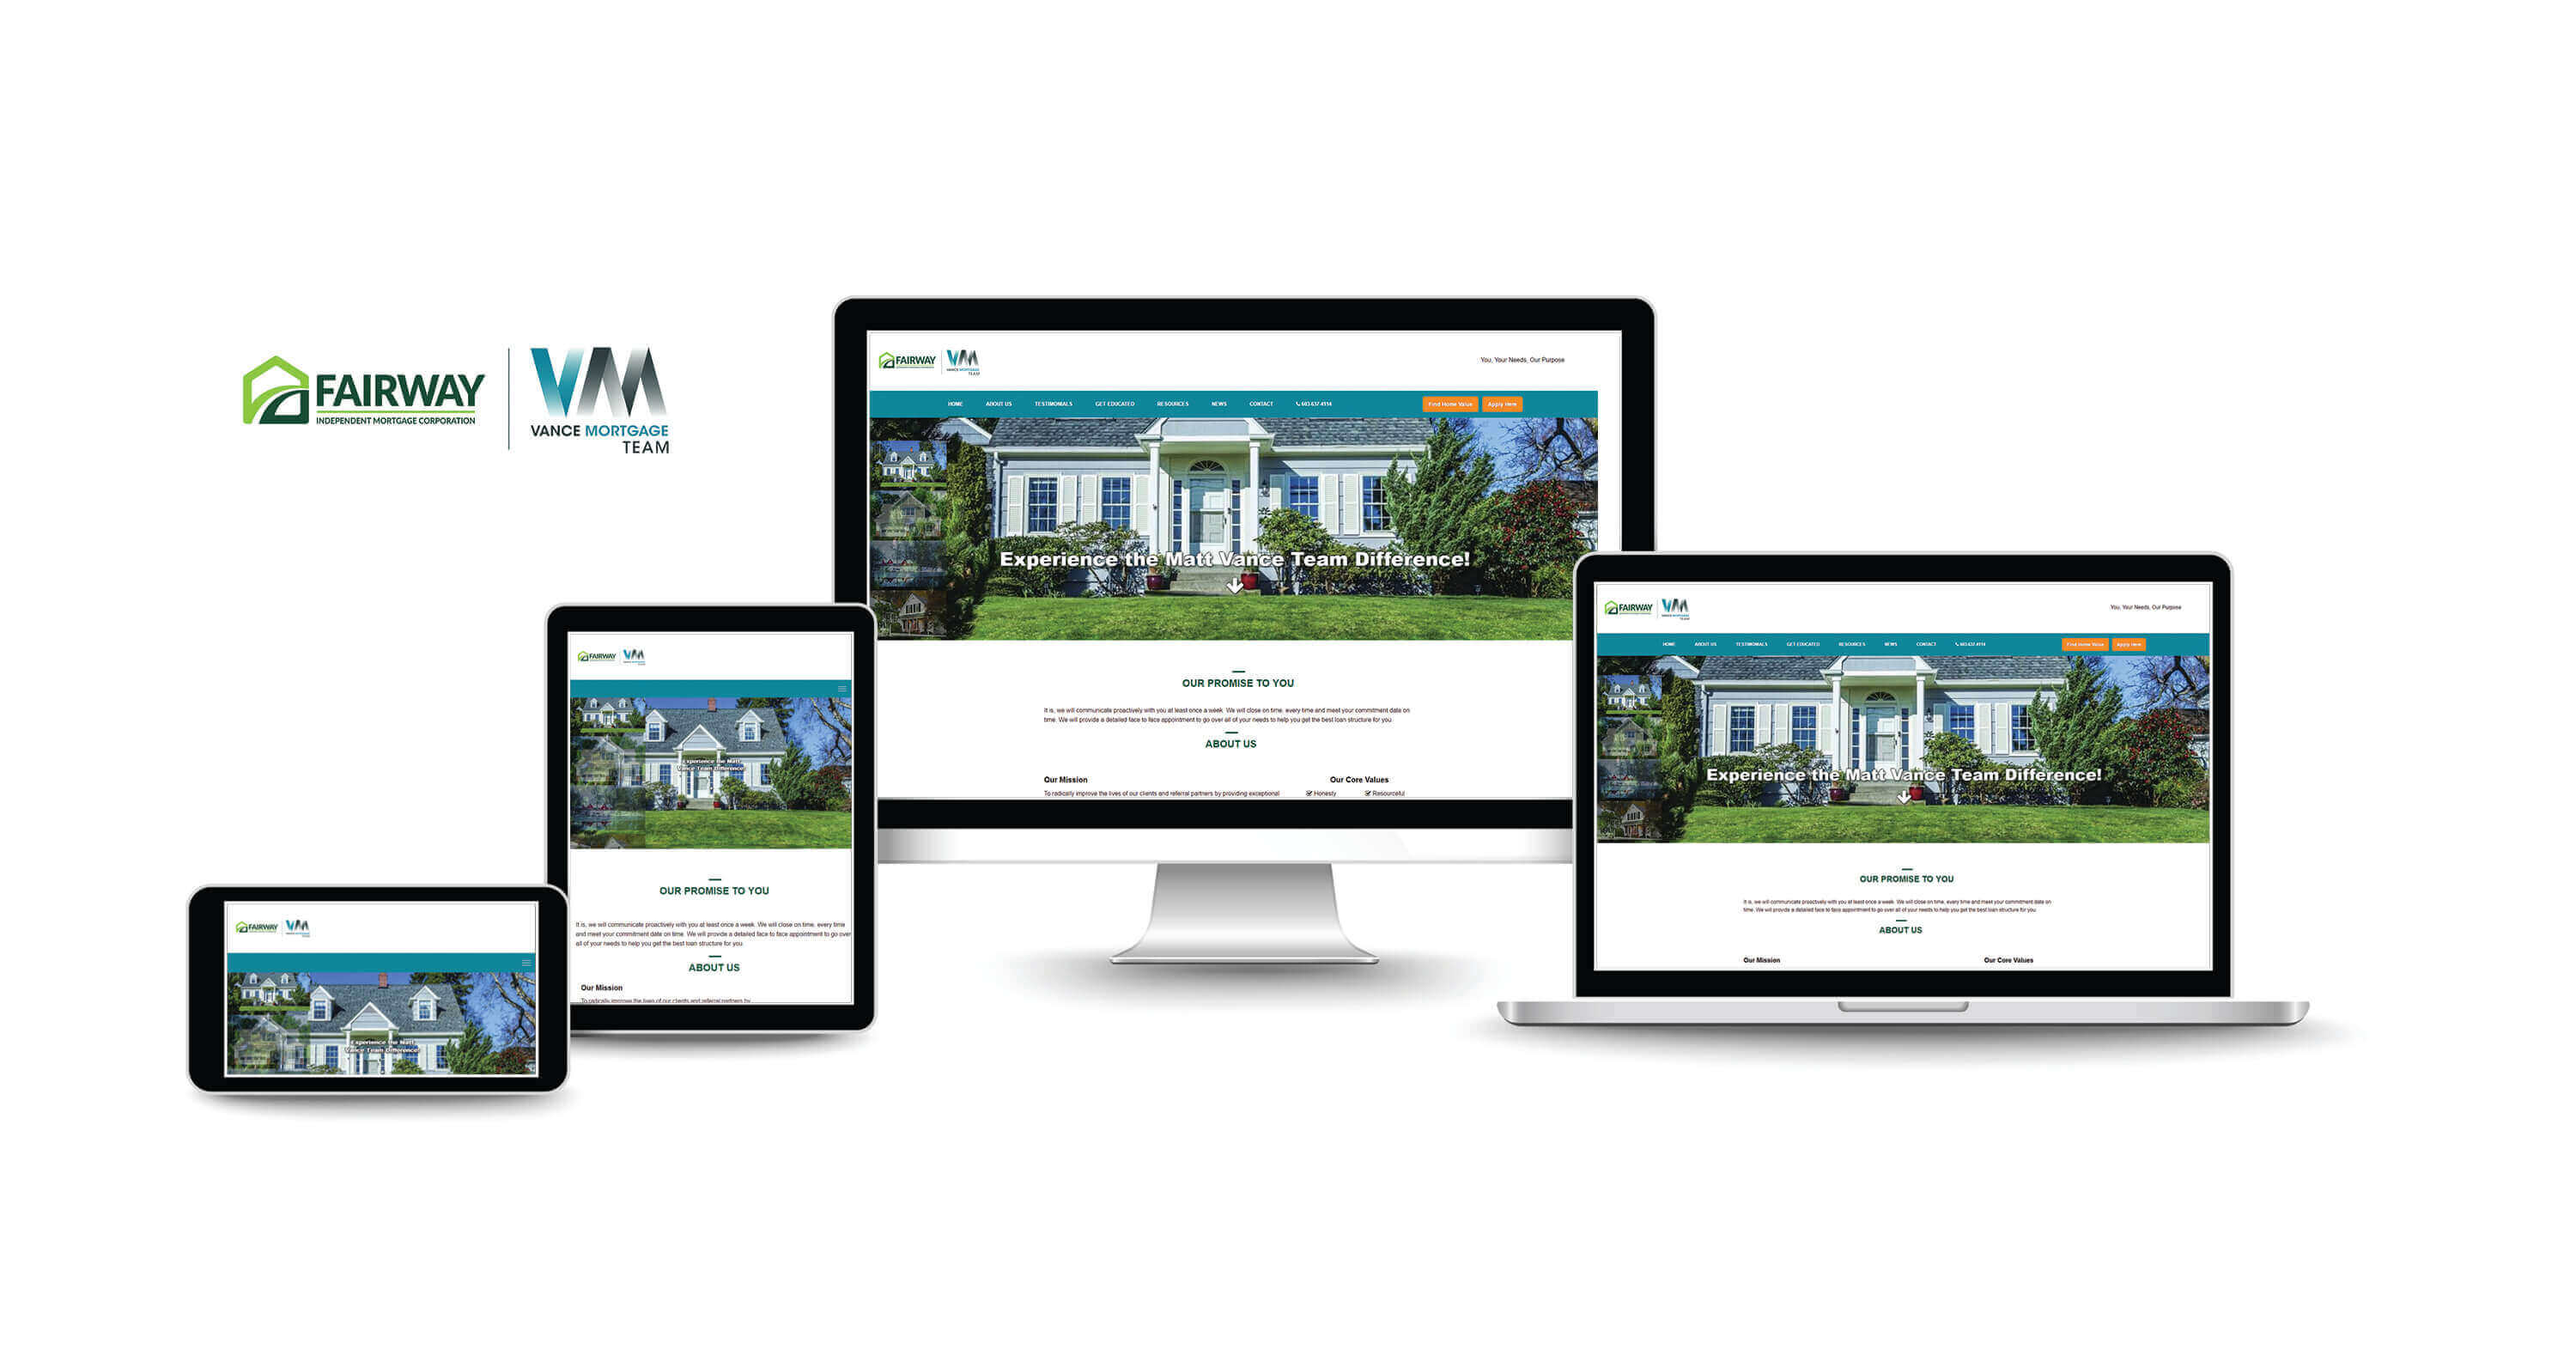 website design company for mortgage services firms